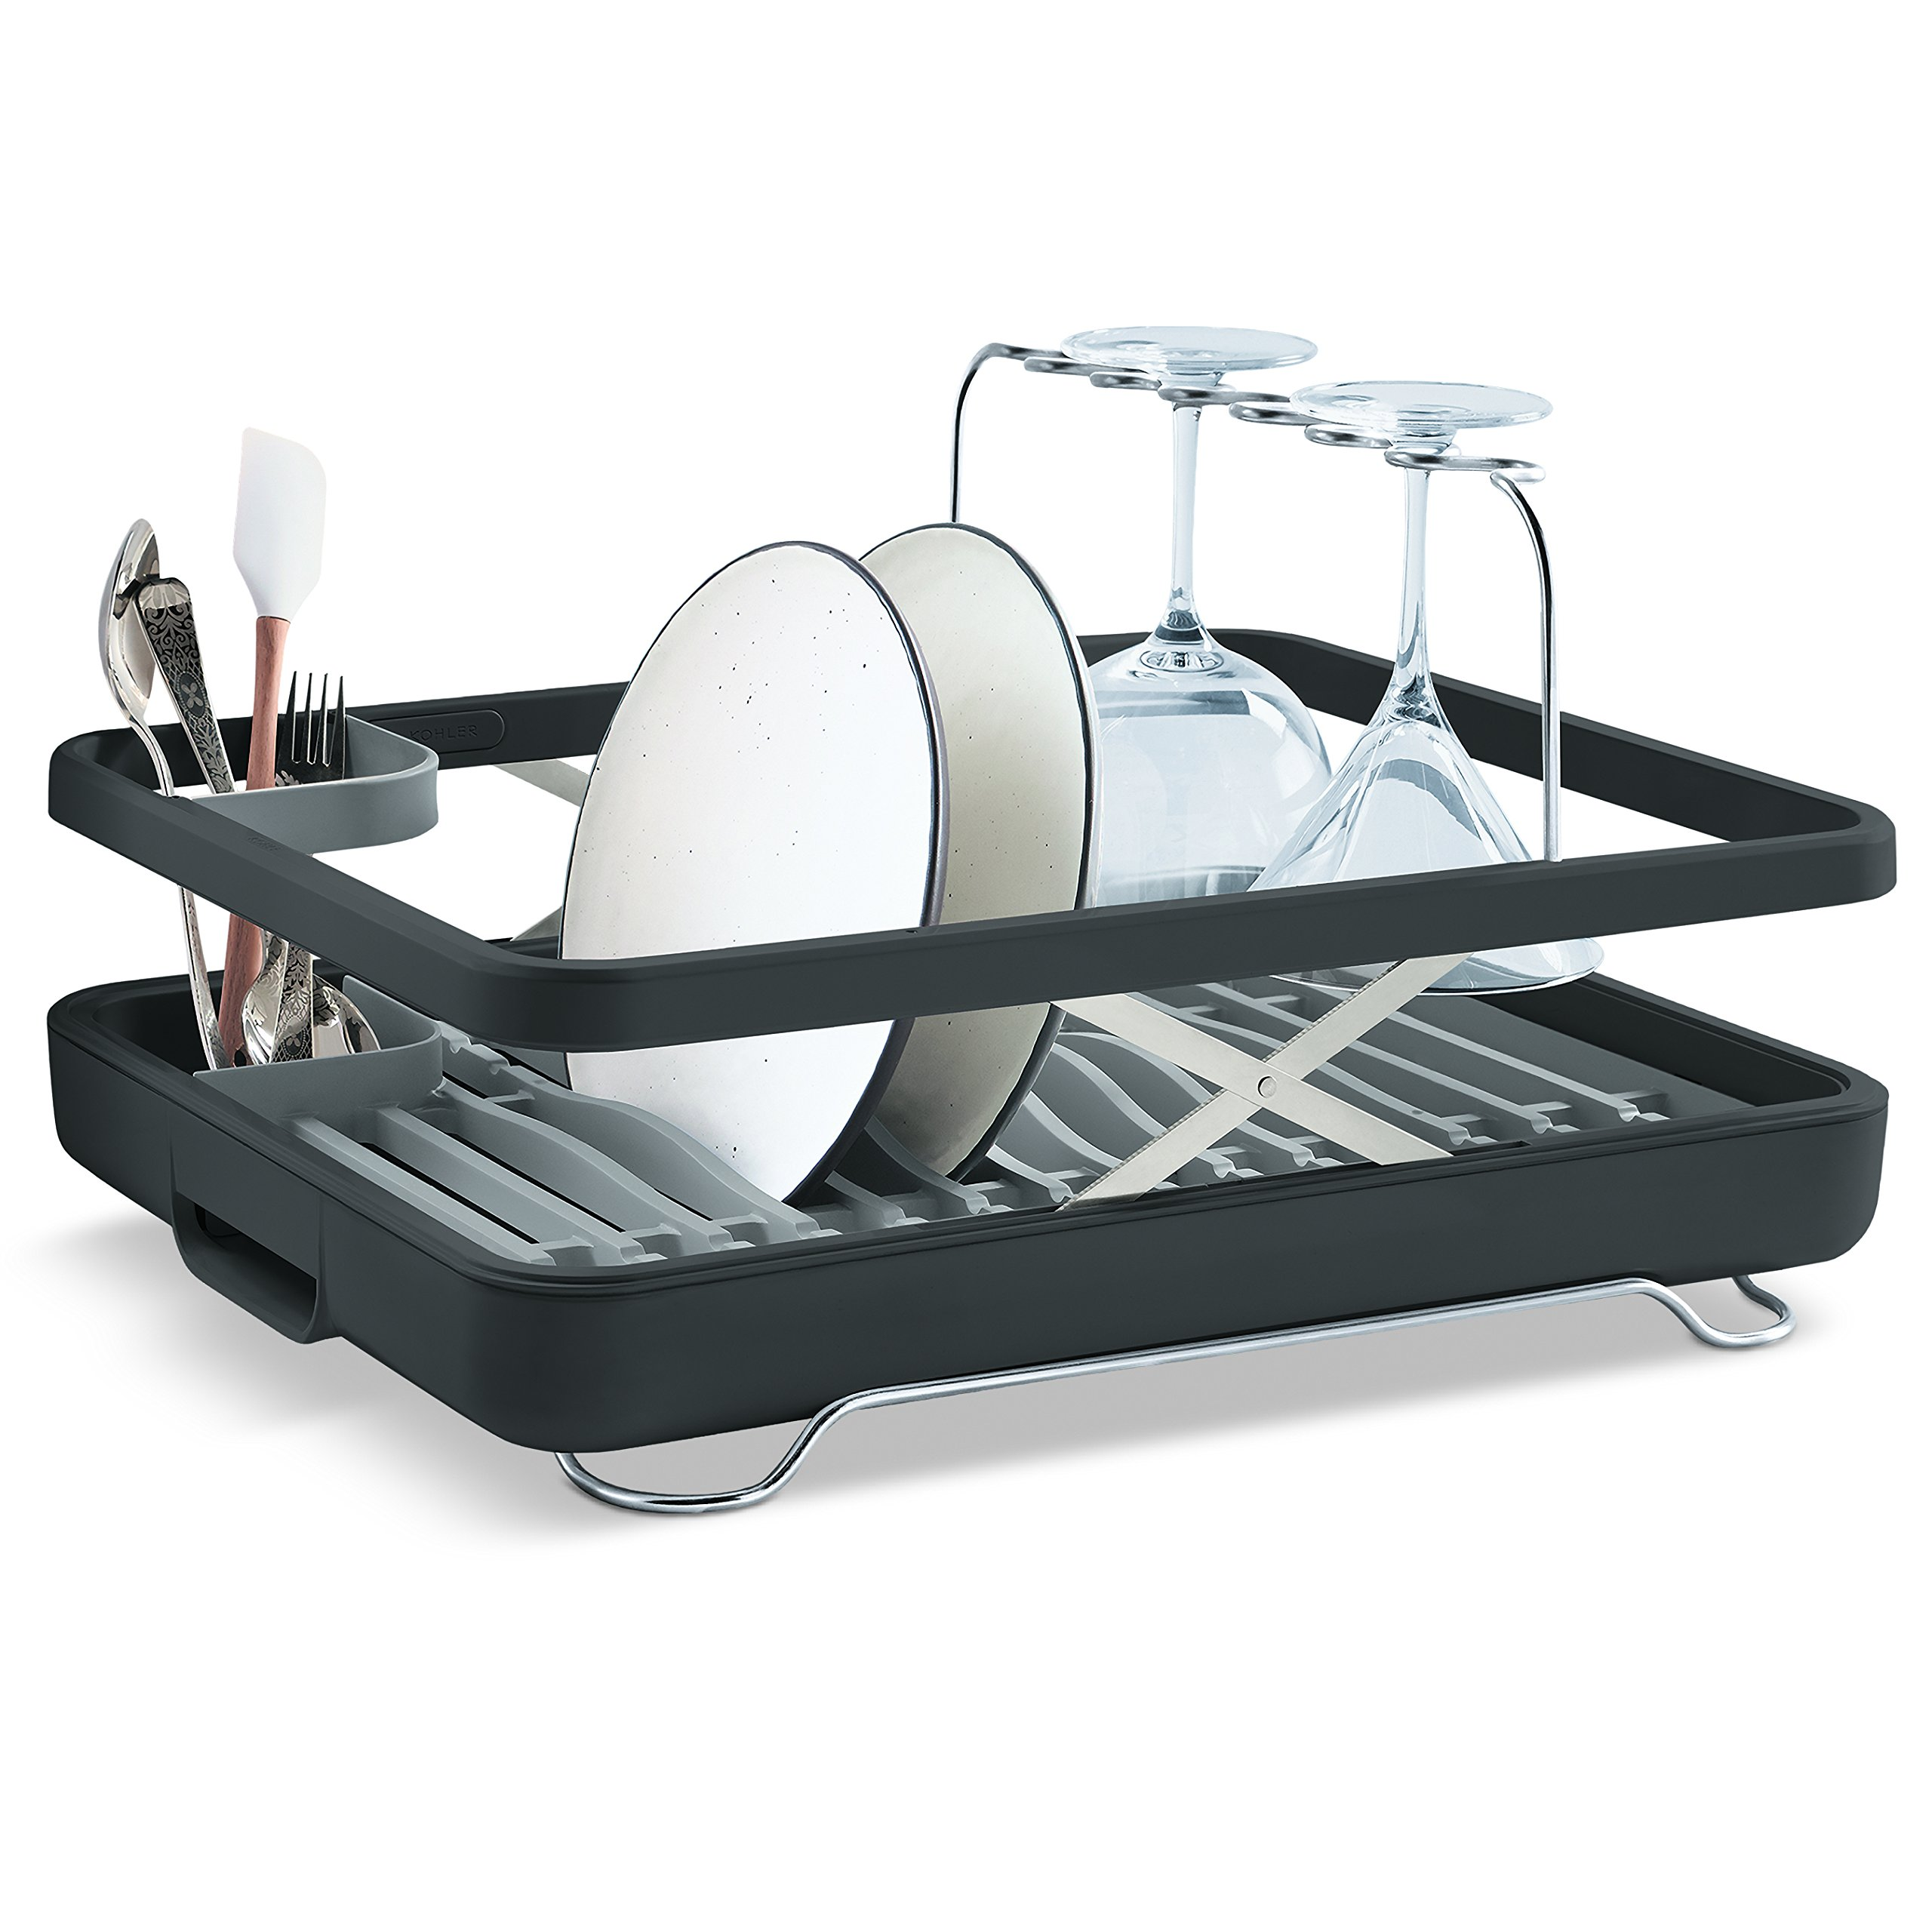 KOHLER Large Collapsible & Storable Dish Drying Rack with Wine Glass Holder and Collapsible Utensil Band. Even Made to Hold Pots and Pans, Charcoal